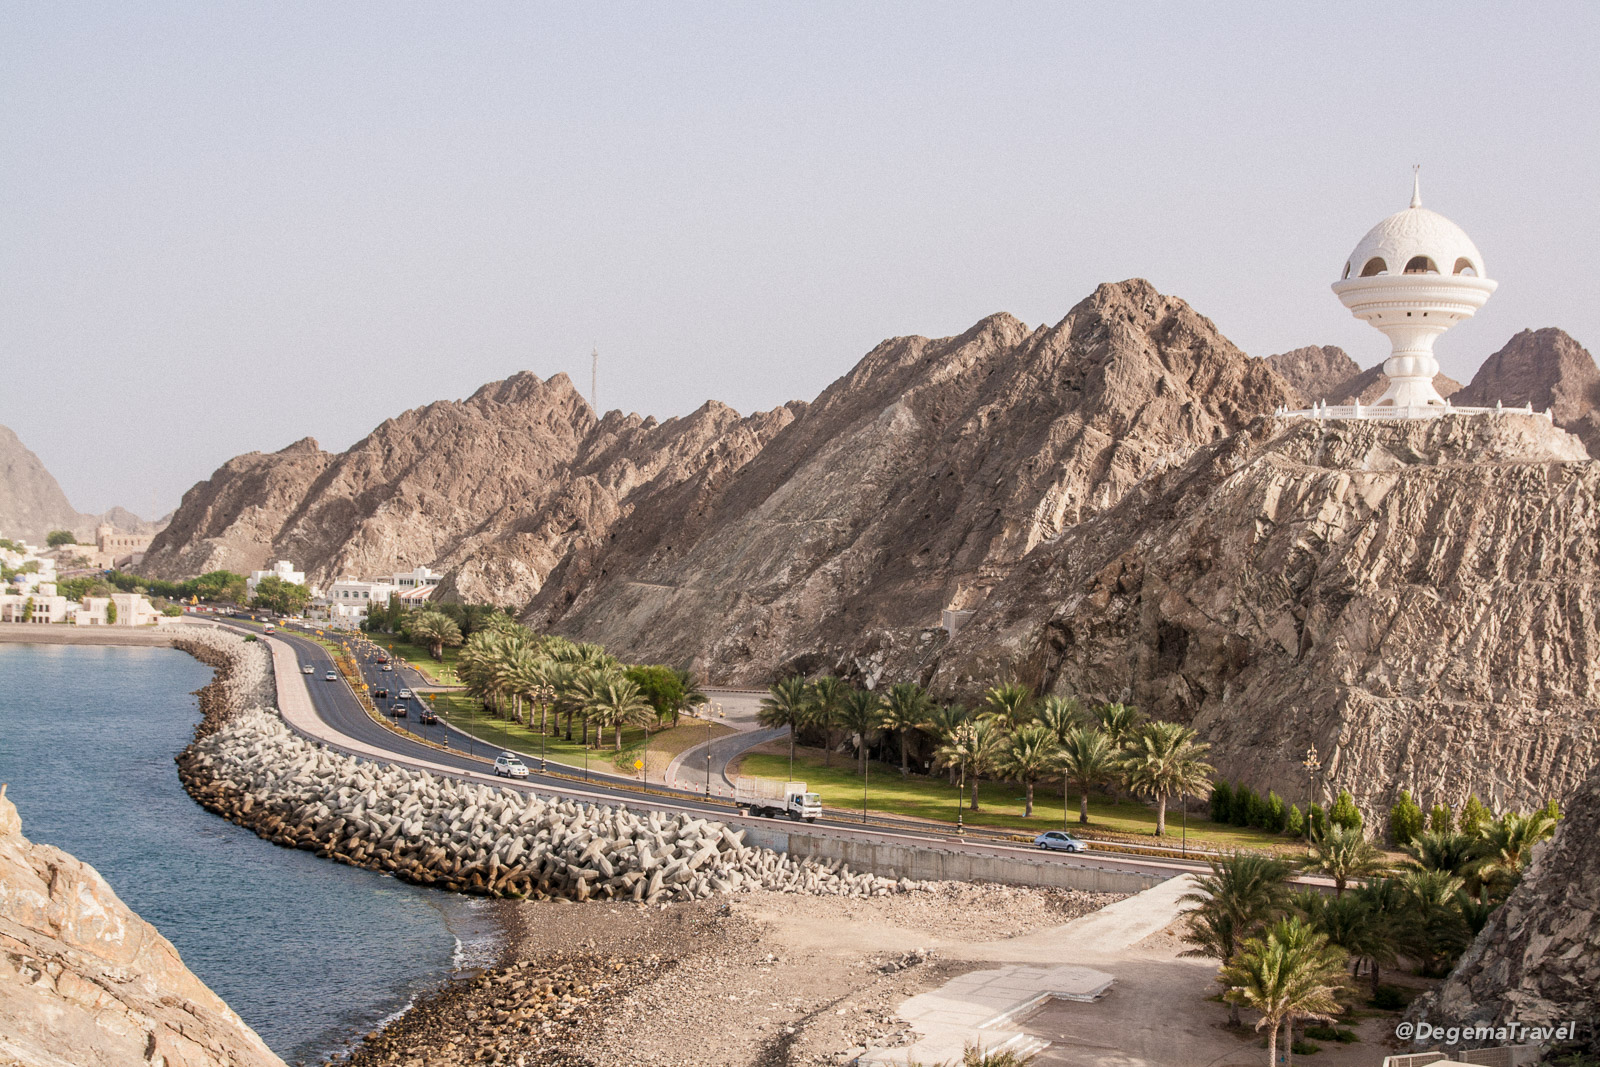 The road from Muttrah to Old Muscat, Oman